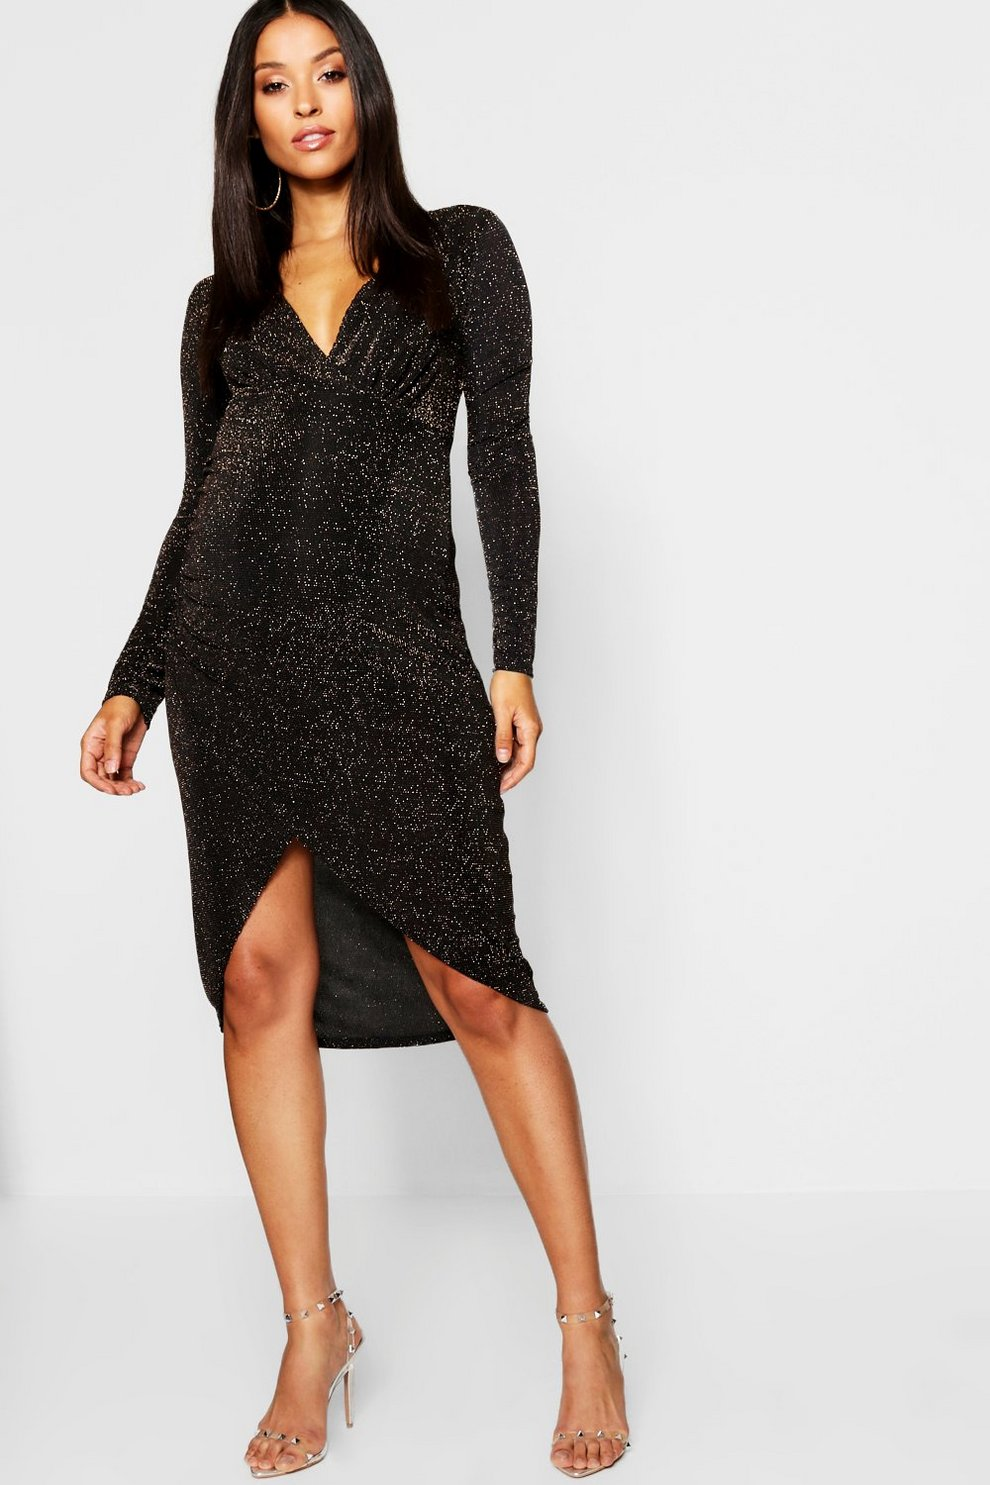 0155be0c2f8 Boohoo Maternity Lace Dress - Gomes Weine AG